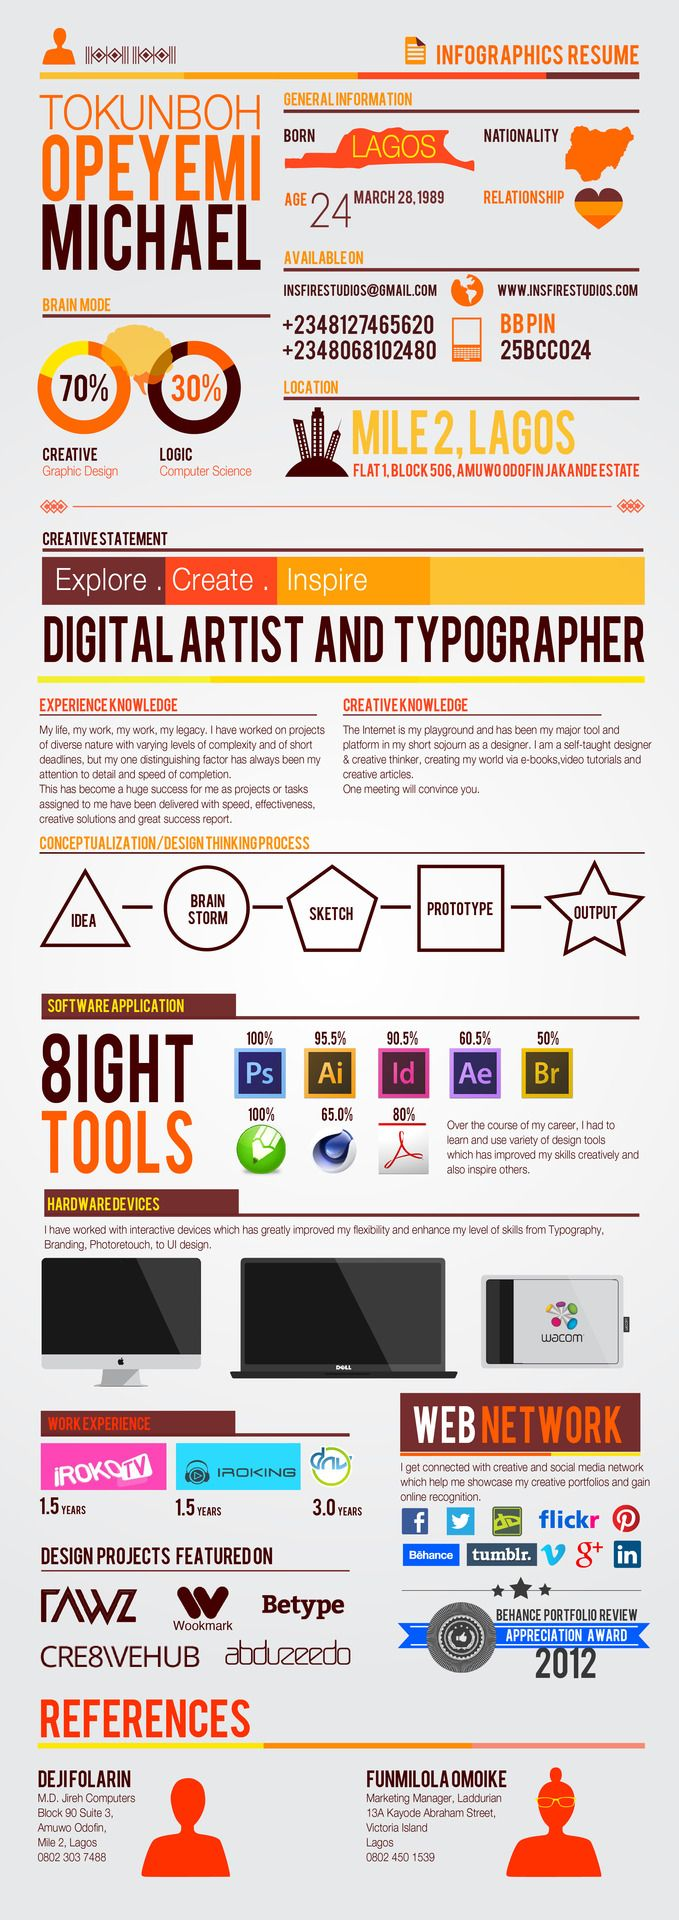 Opposenewapstandardsus  Winsome  Ideas About Infographic Resume On Pinterest  My Portfolio  With Extraordinary  Ideas About Infographic Resume On Pinterest  My Portfolio Resume And Resume Design With Extraordinary Musicians Resume Also Chief Of Staff Resume In Addition Well Written Resume And How To Make An Awesome Resume As Well As Resume Statements Additionally Bartender Job Description For Resume From Pinterestcom With Opposenewapstandardsus  Extraordinary  Ideas About Infographic Resume On Pinterest  My Portfolio  With Extraordinary  Ideas About Infographic Resume On Pinterest  My Portfolio Resume And Resume Design And Winsome Musicians Resume Also Chief Of Staff Resume In Addition Well Written Resume From Pinterestcom